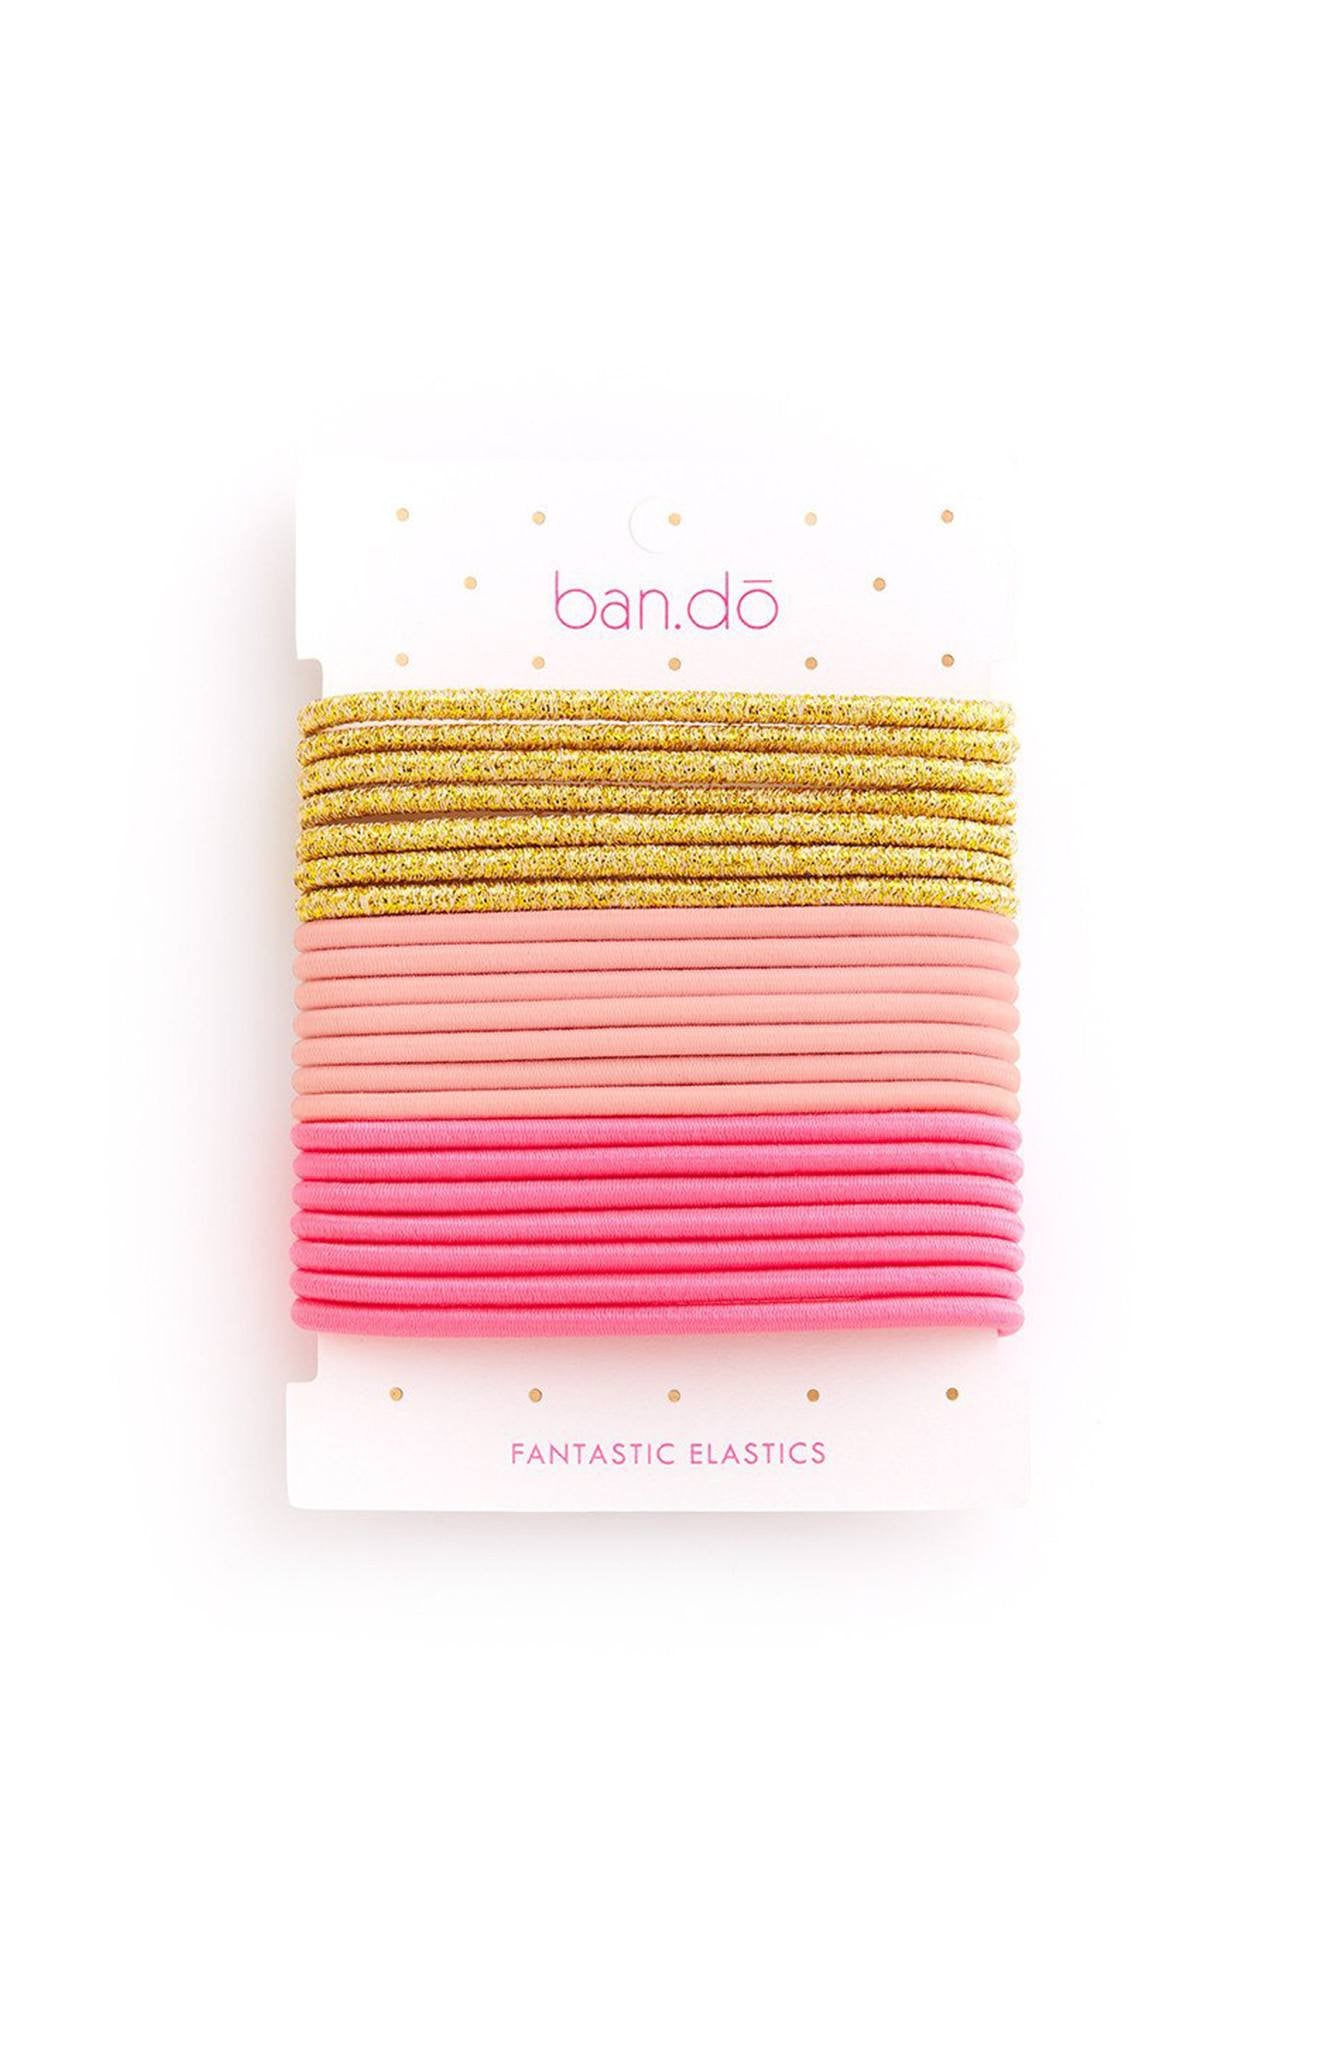 Ban.do Fantastic Elastics - Blush/Gold/Neon Pink